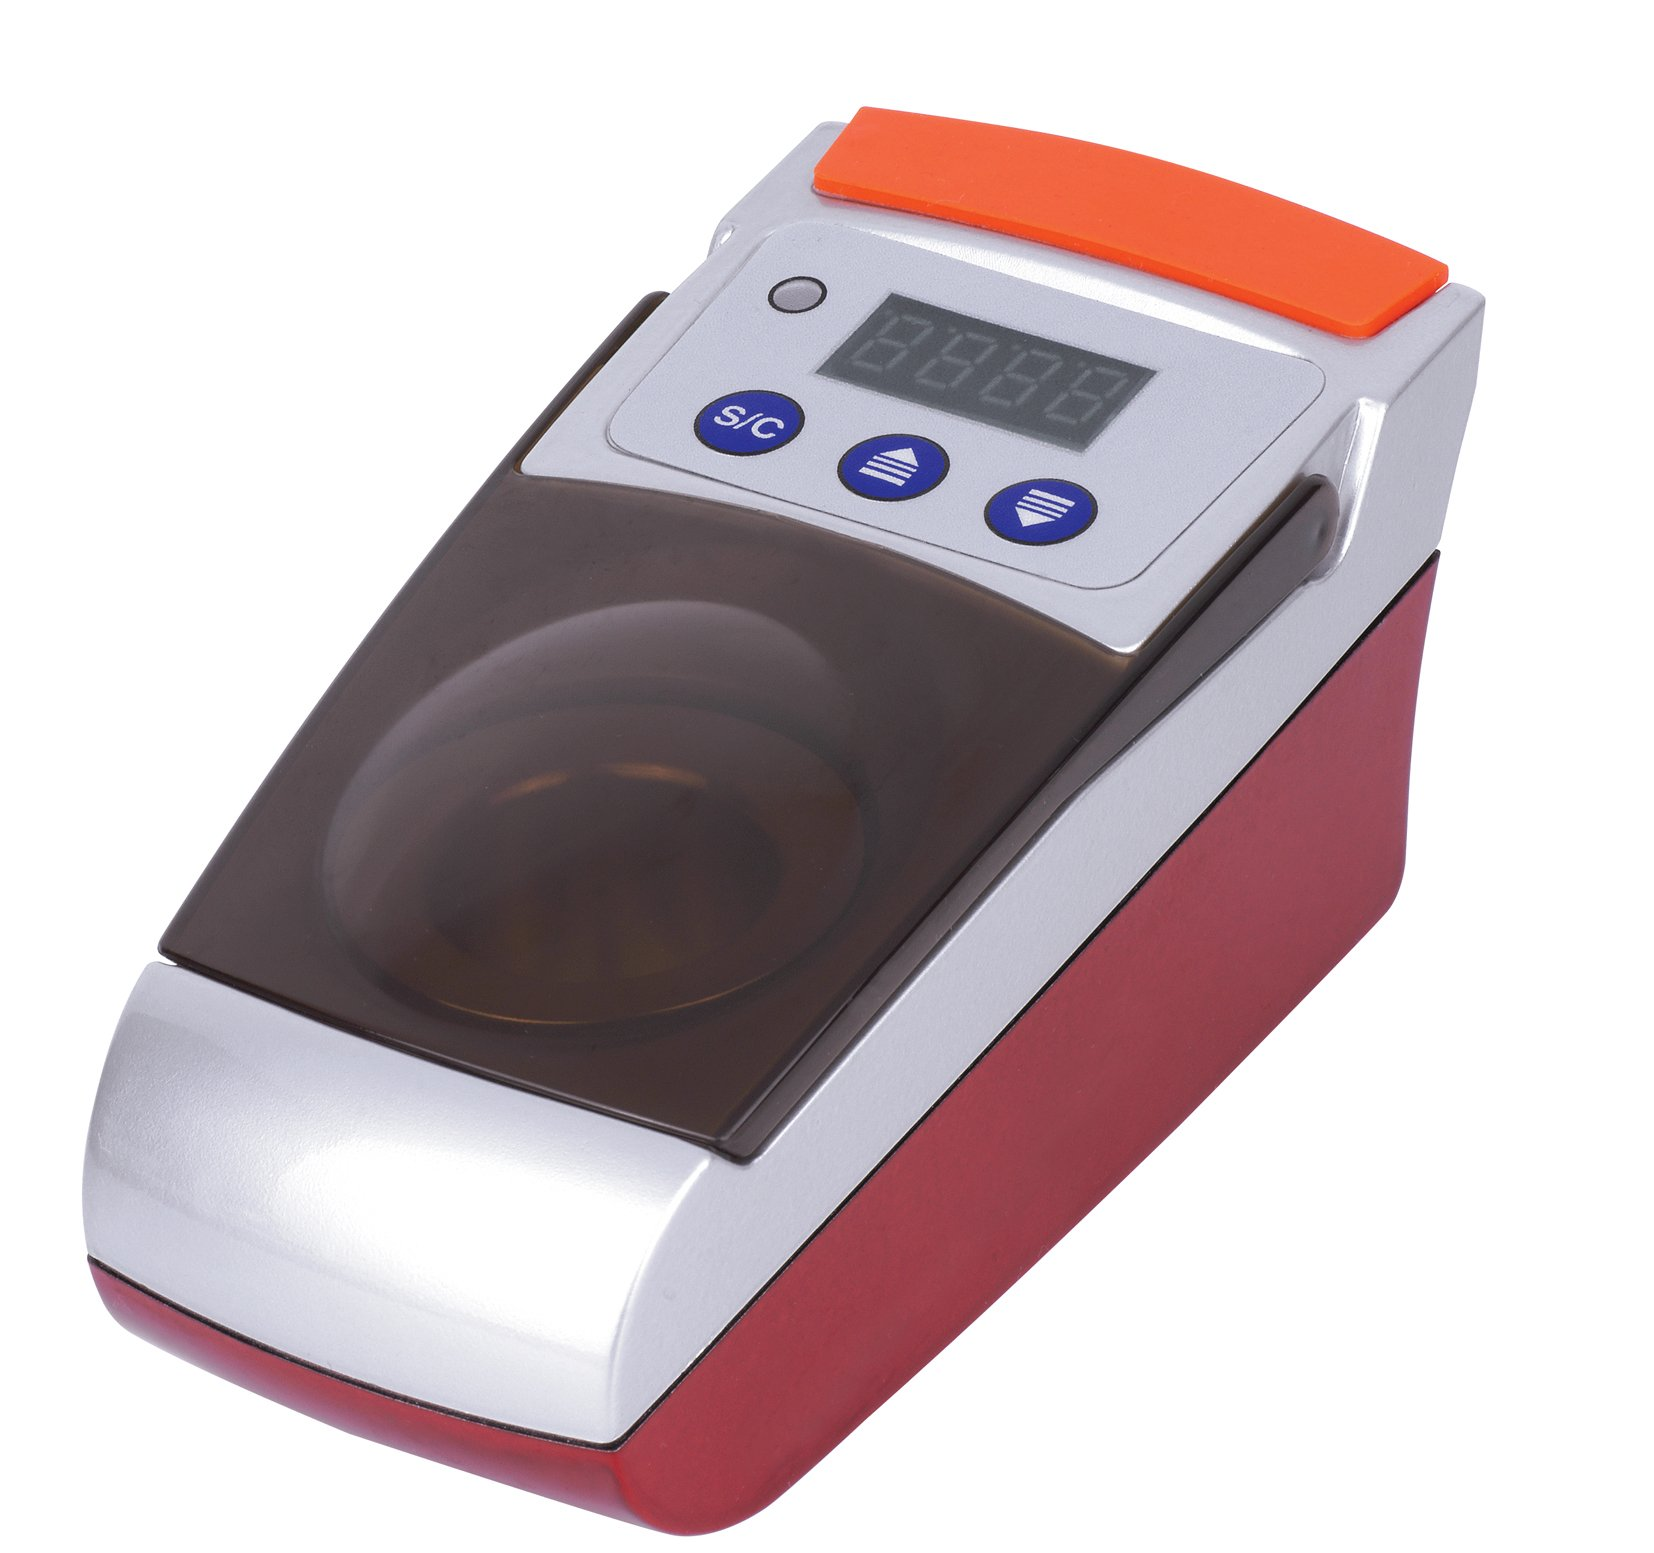 SDent® Portable Wax Heater Pot LED Display Wax Melting Dipping Pot Dental Lab FREE SHIPPING by SDent